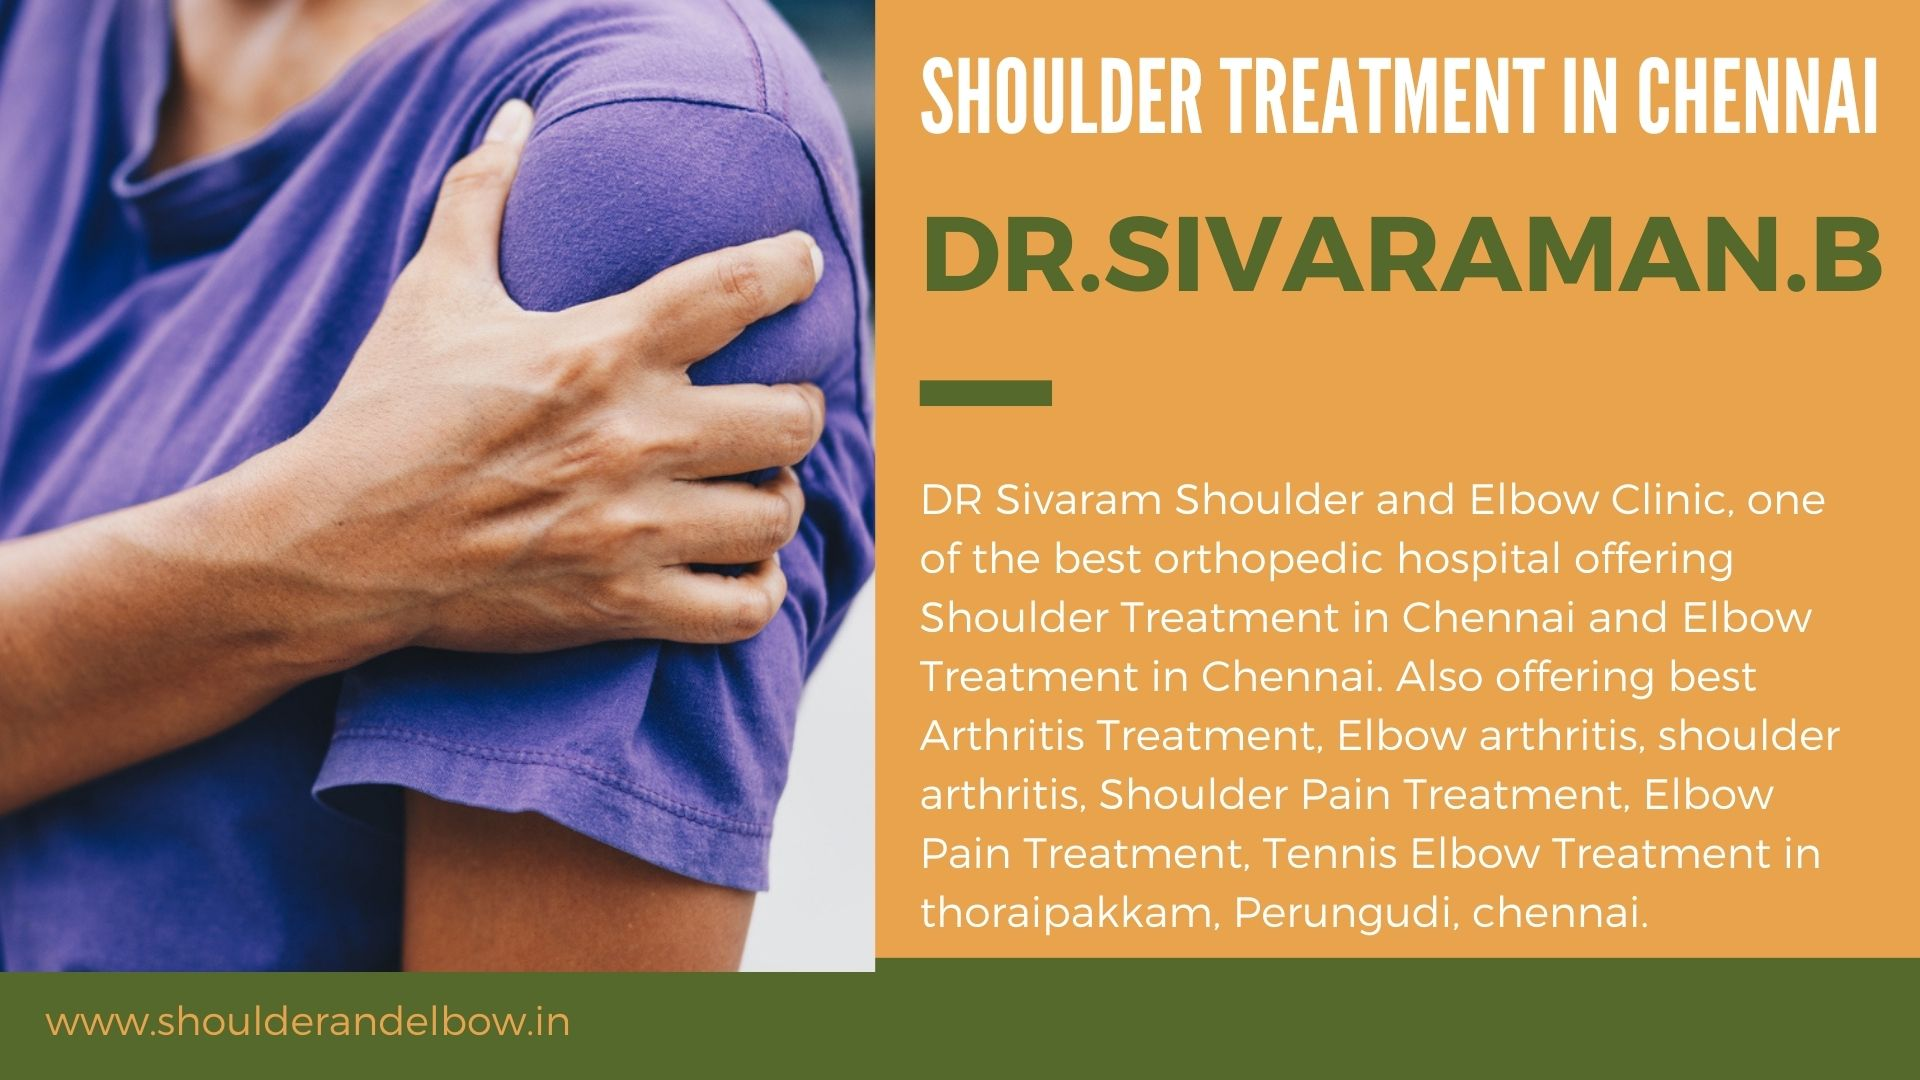 Shoulder and Elbow Treatment in chennai